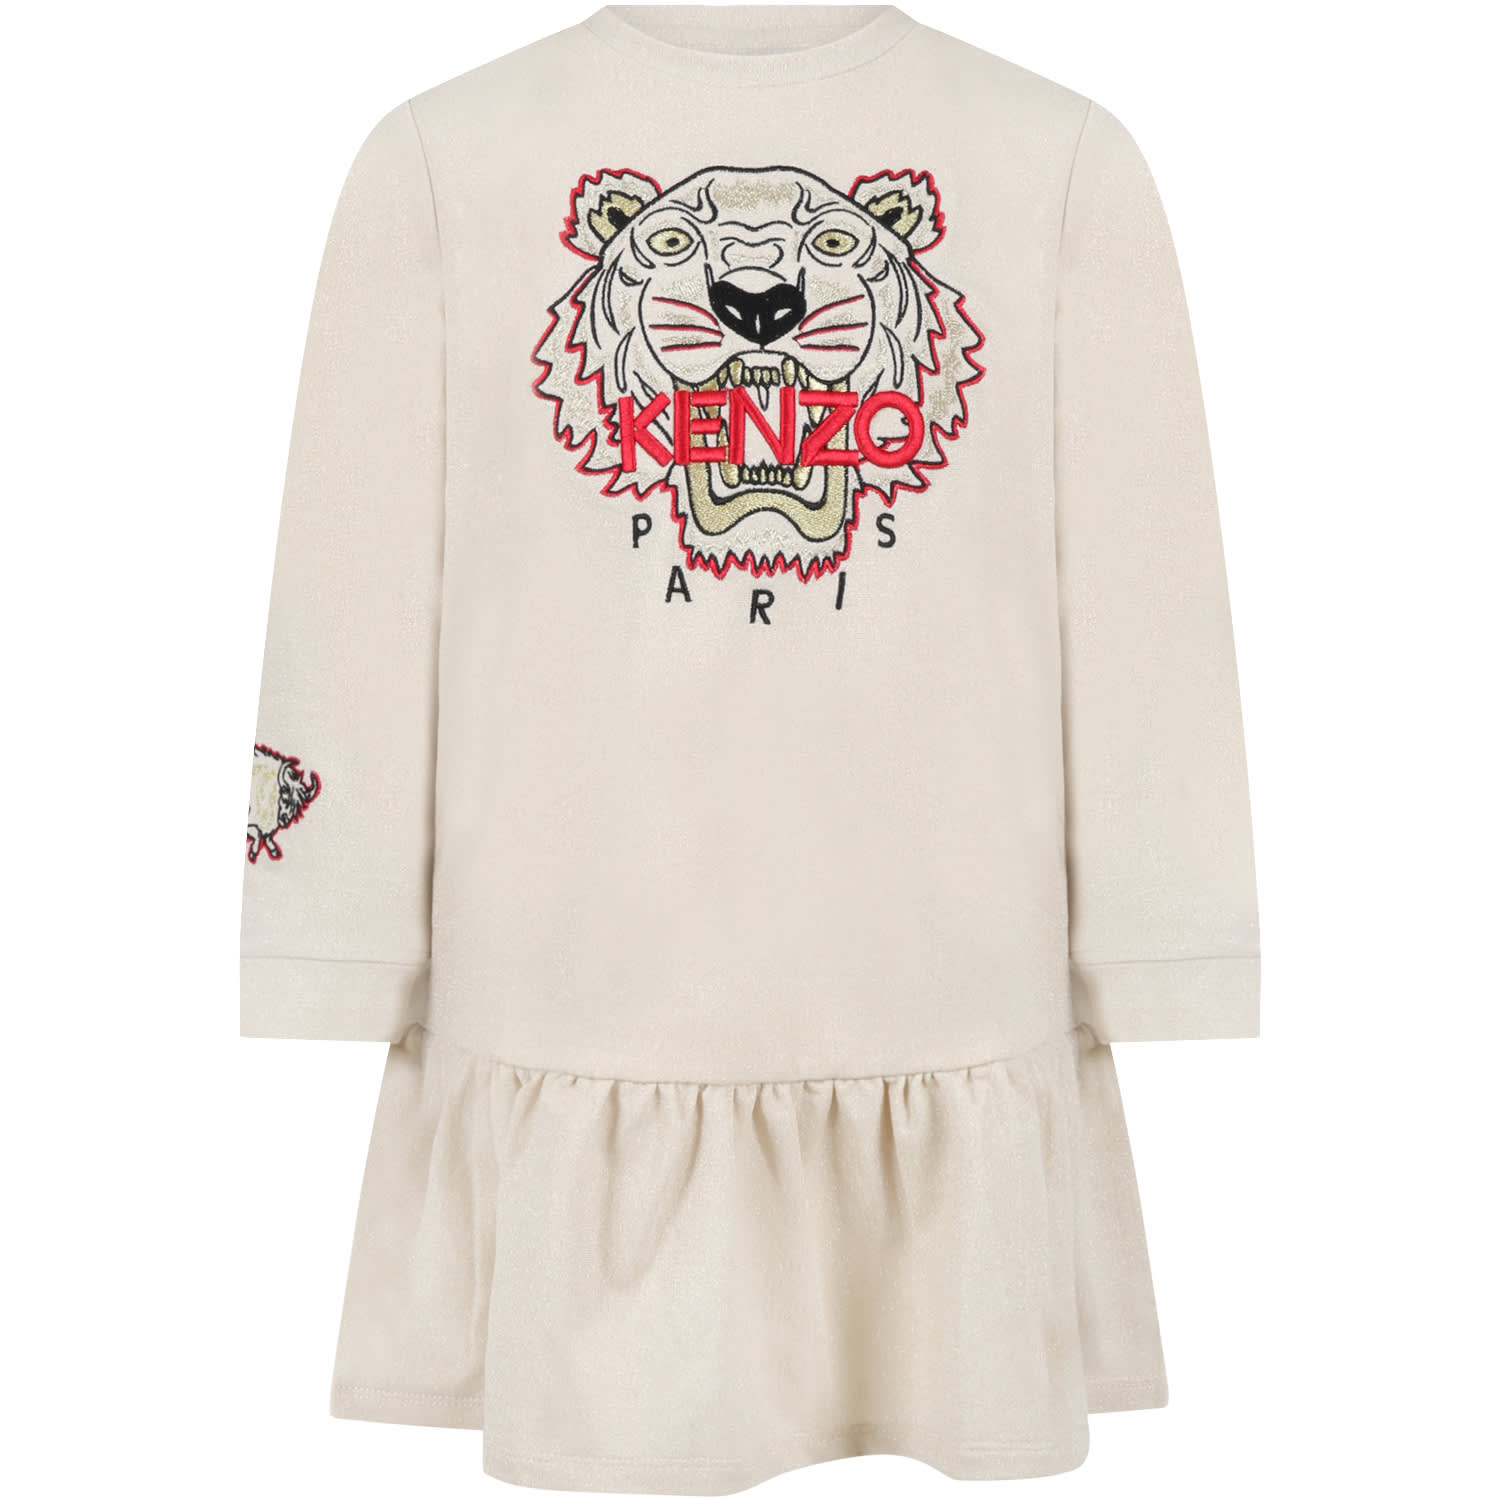 Beige Dress For Girl With Tiger